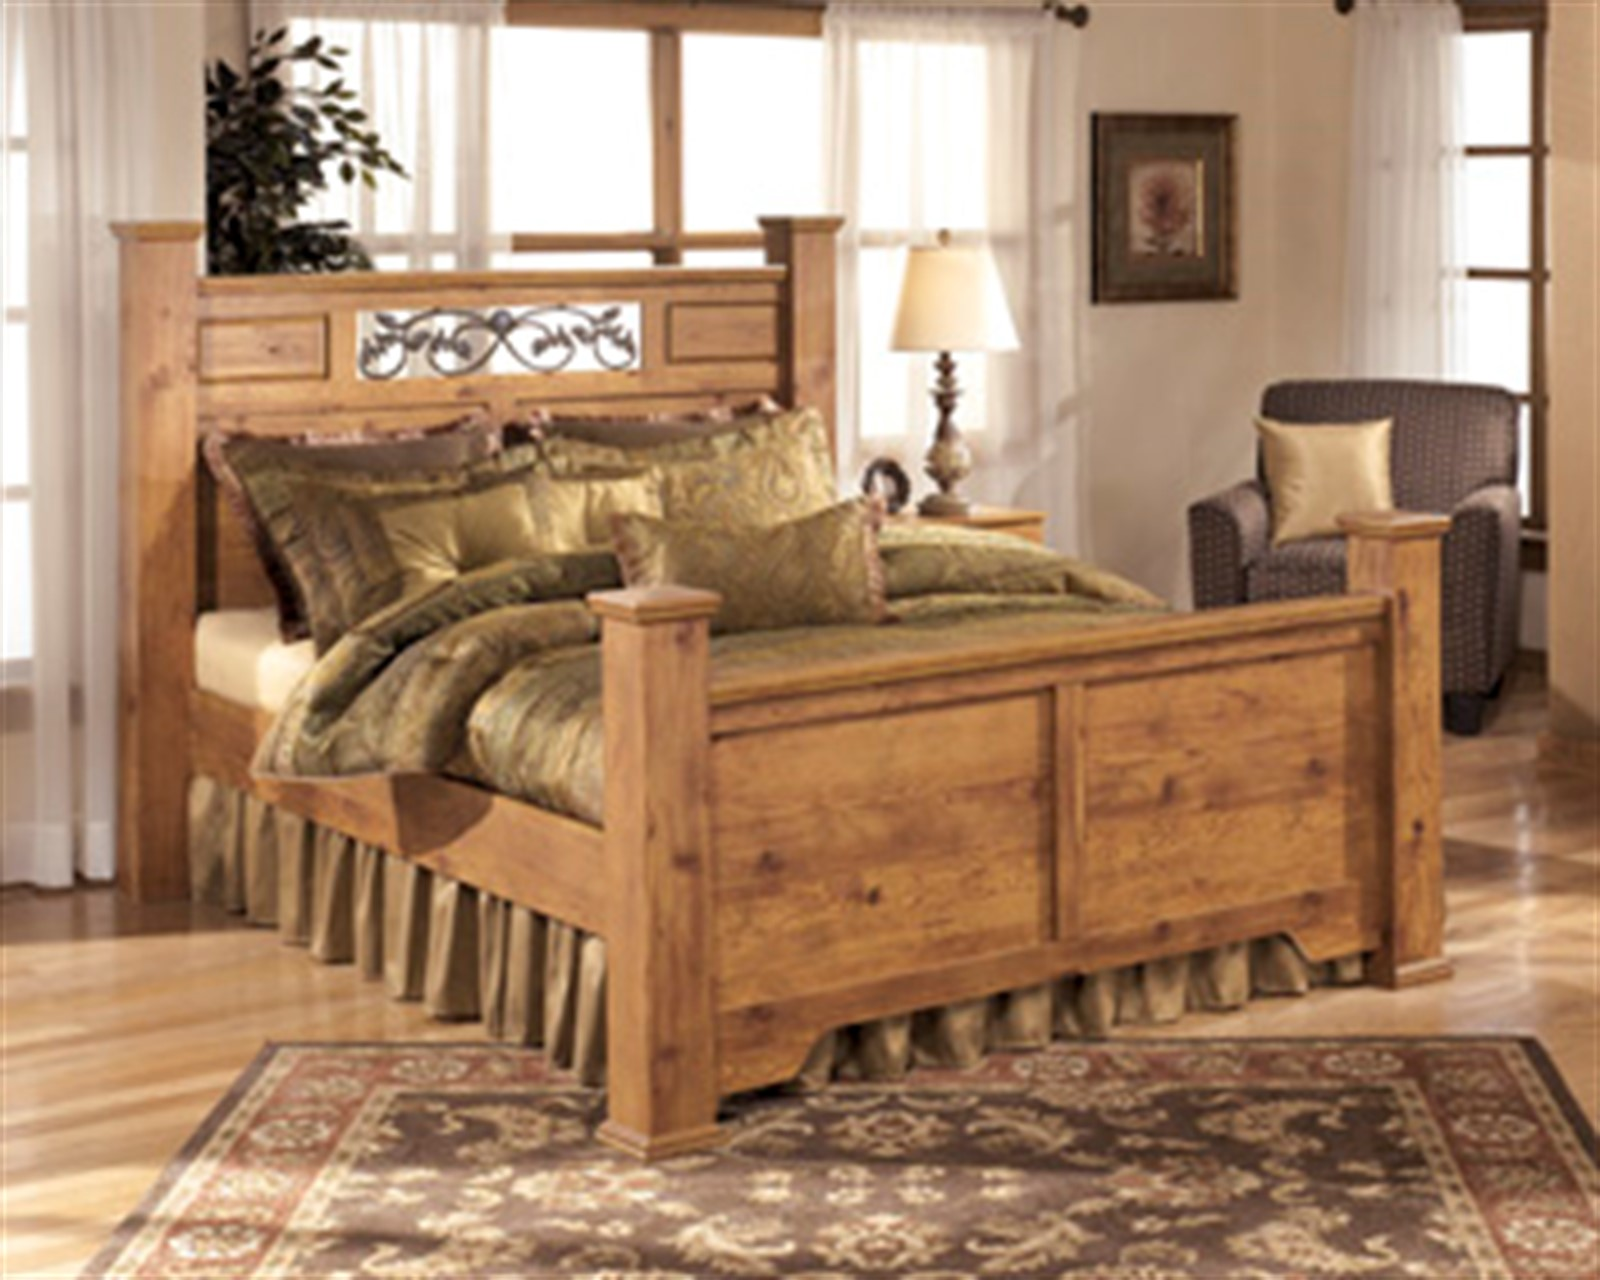 Bittersweet King Bed with Posts